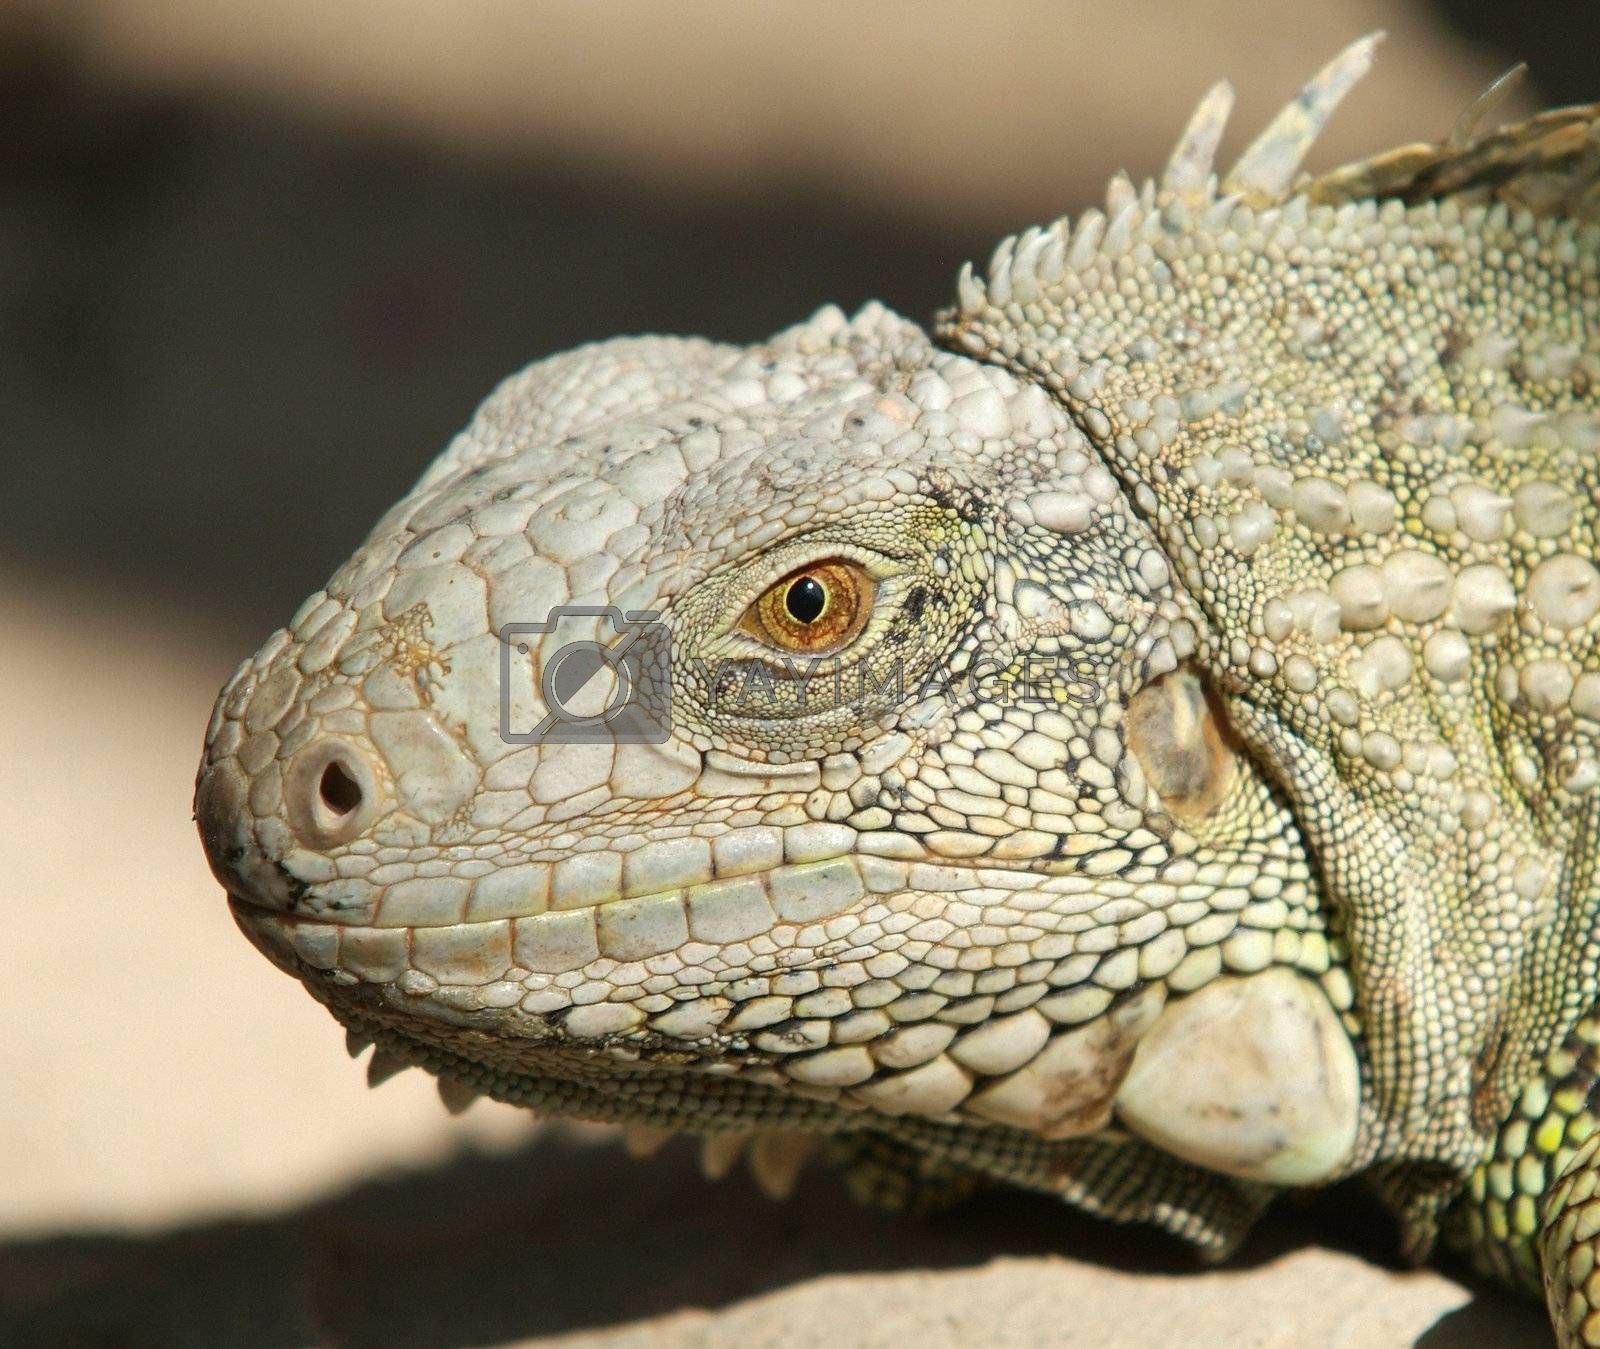 Head of iguana by epixx